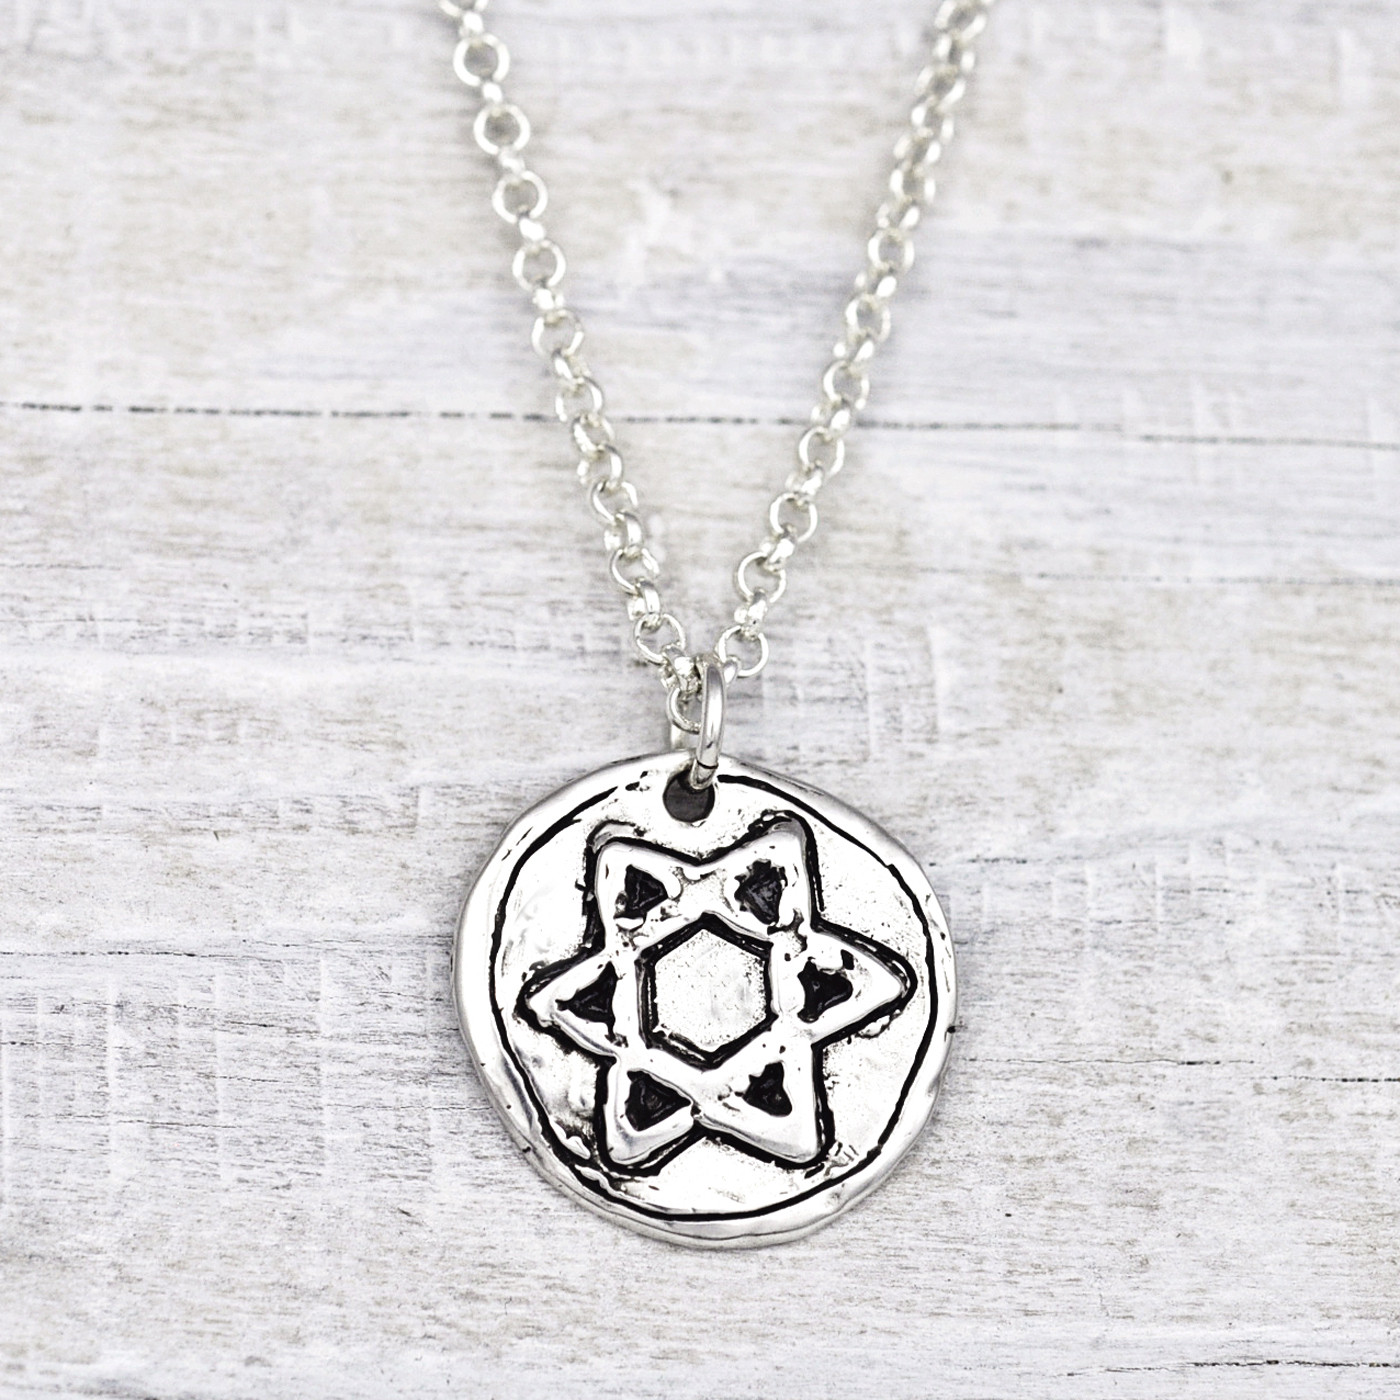 FIND STRENGTH' NECKLACE  $56